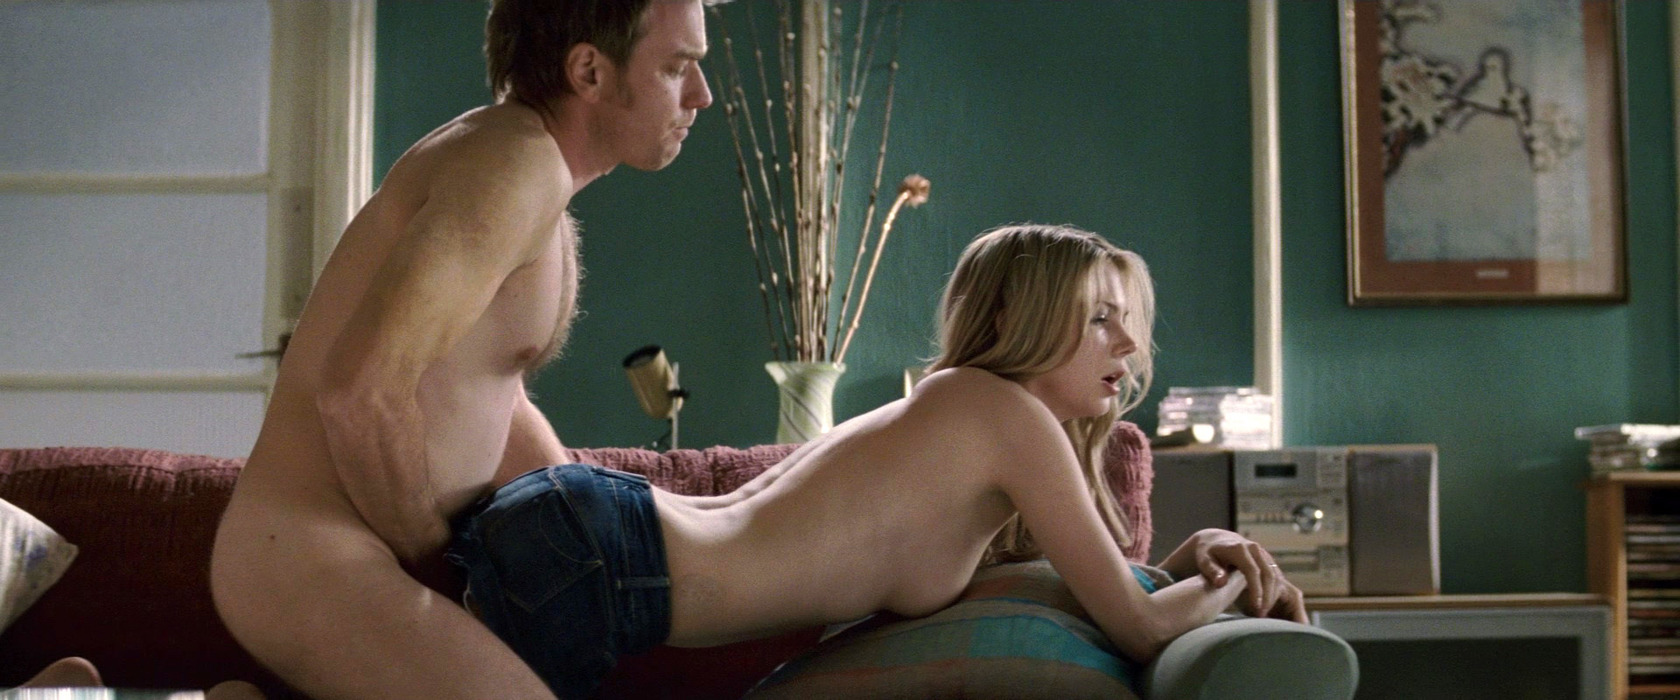 Michelle Williams desnuda coño